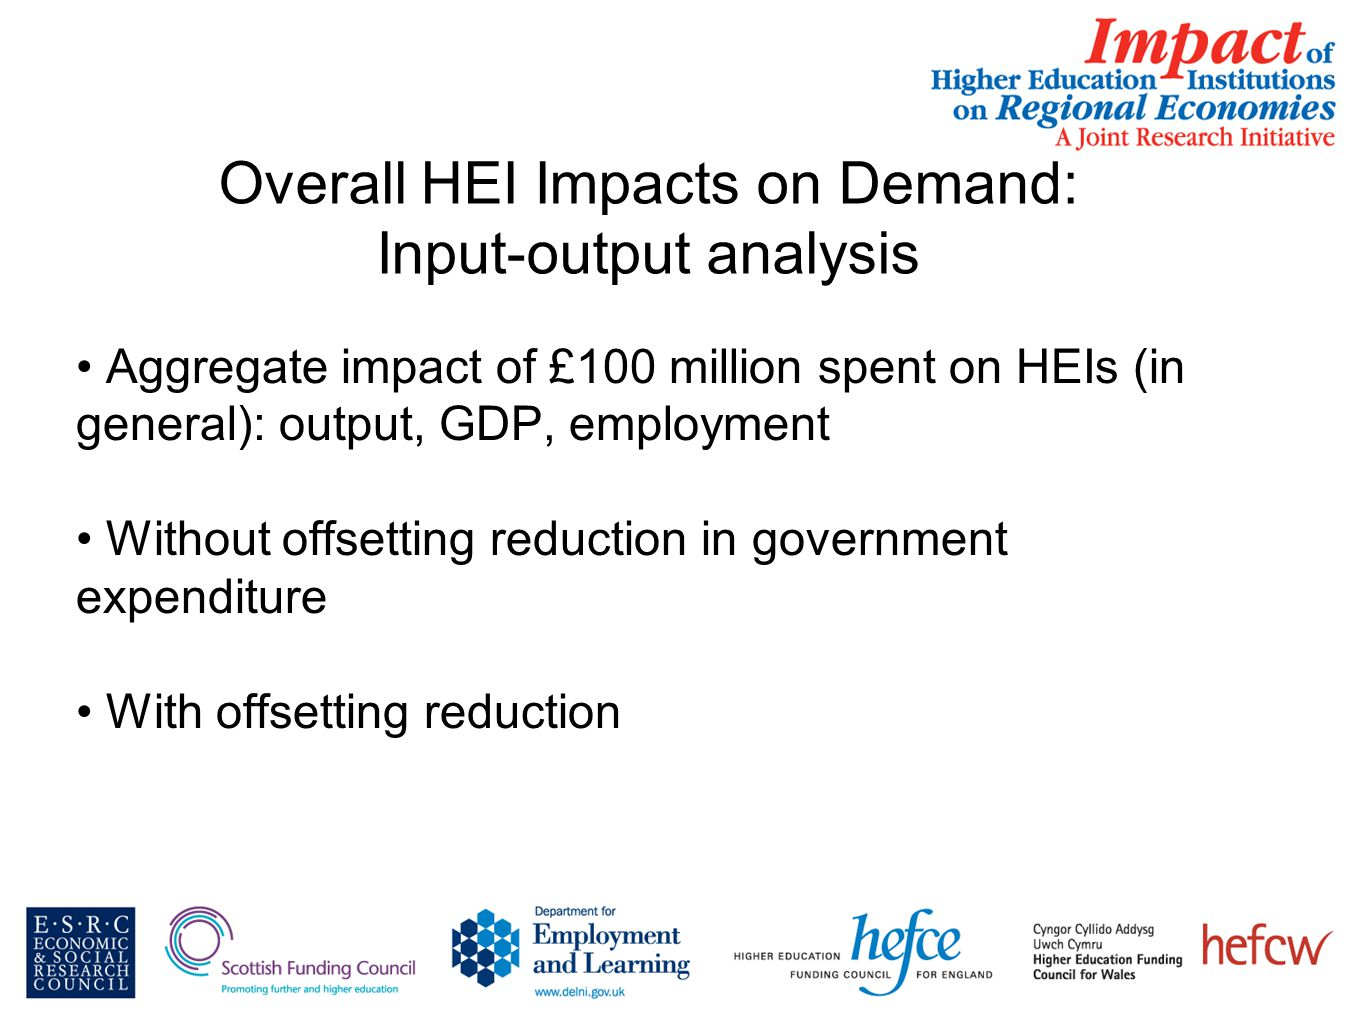 Overall HEI Impacts on Demand: Input-output analysis Aggregate impact of £100 million spent on HEIs (in general): output, GDP, employment Without offsetting reduction in government expenditure With offsetting reduction